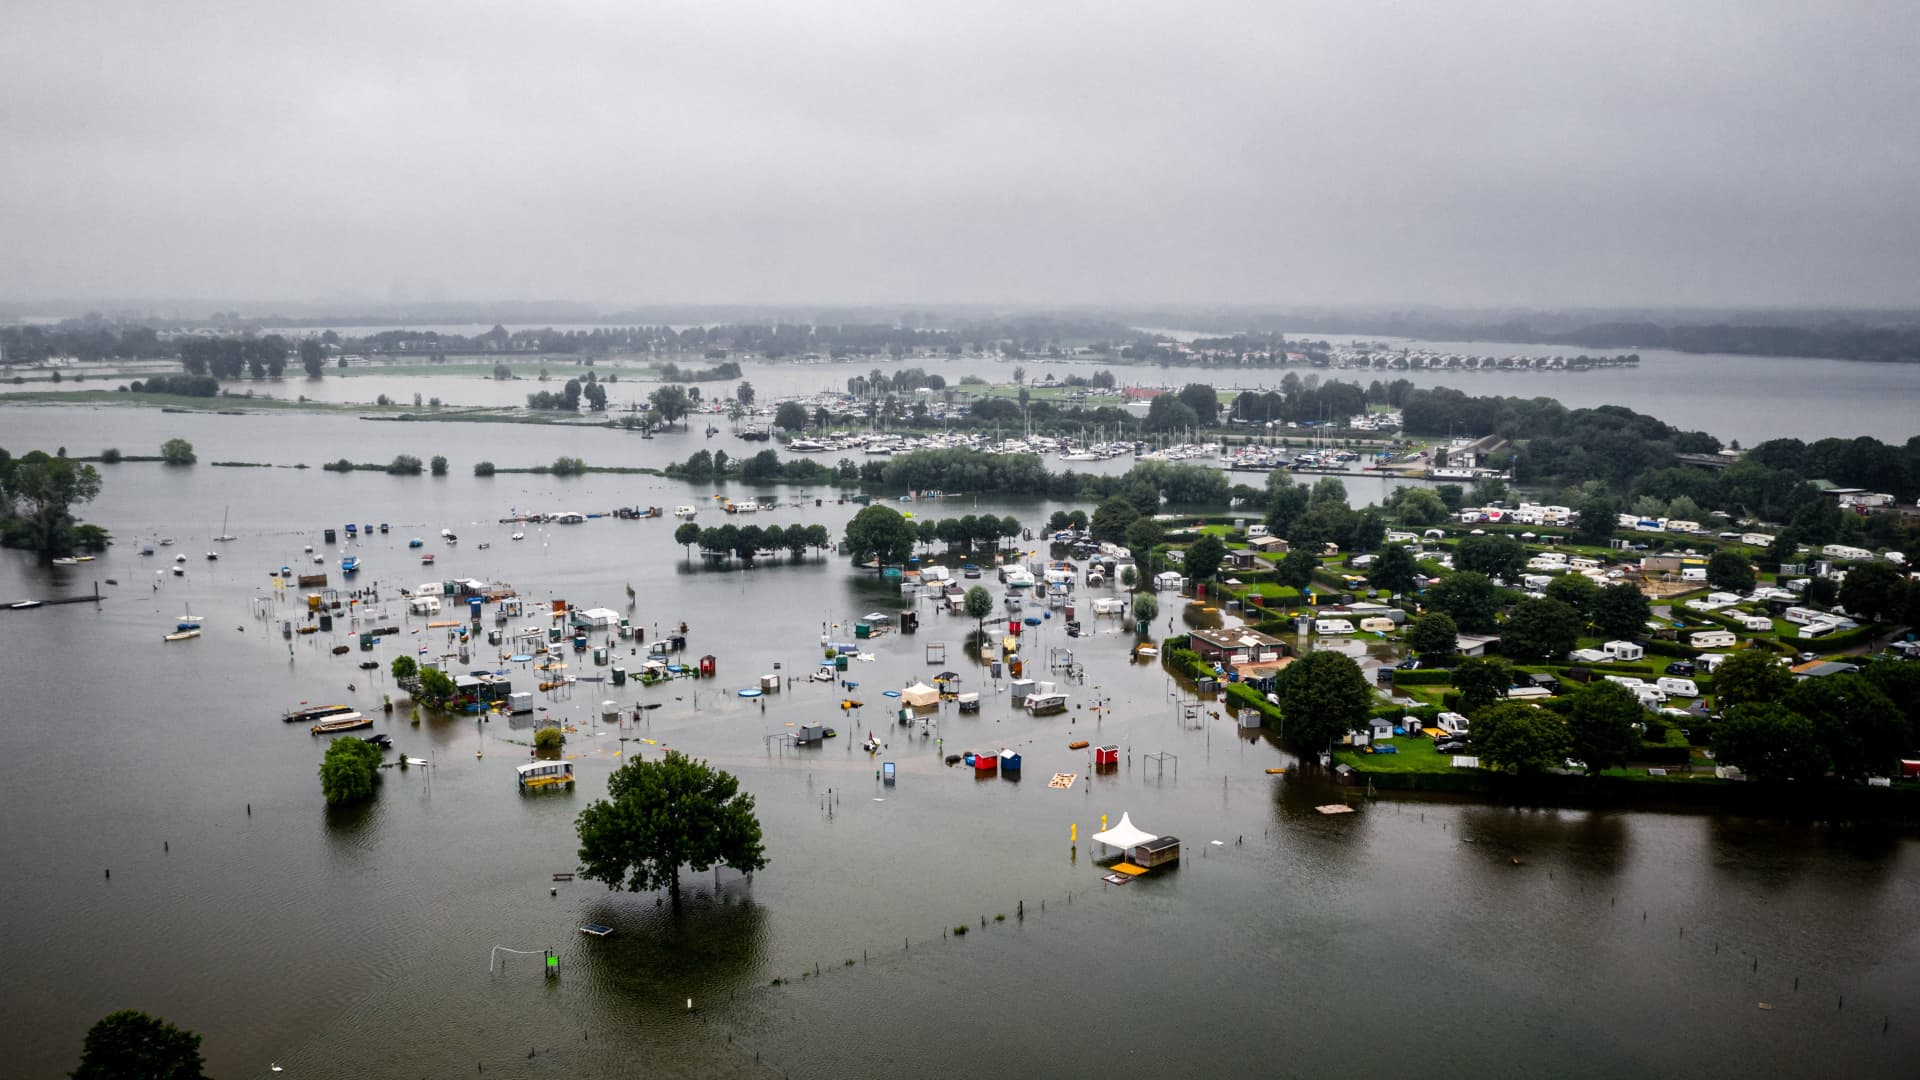 This aerial photograph shows partially submerged caravans and campers in flood waters at the camping site of De Hatenboer in Roermond on July 15, 2021.